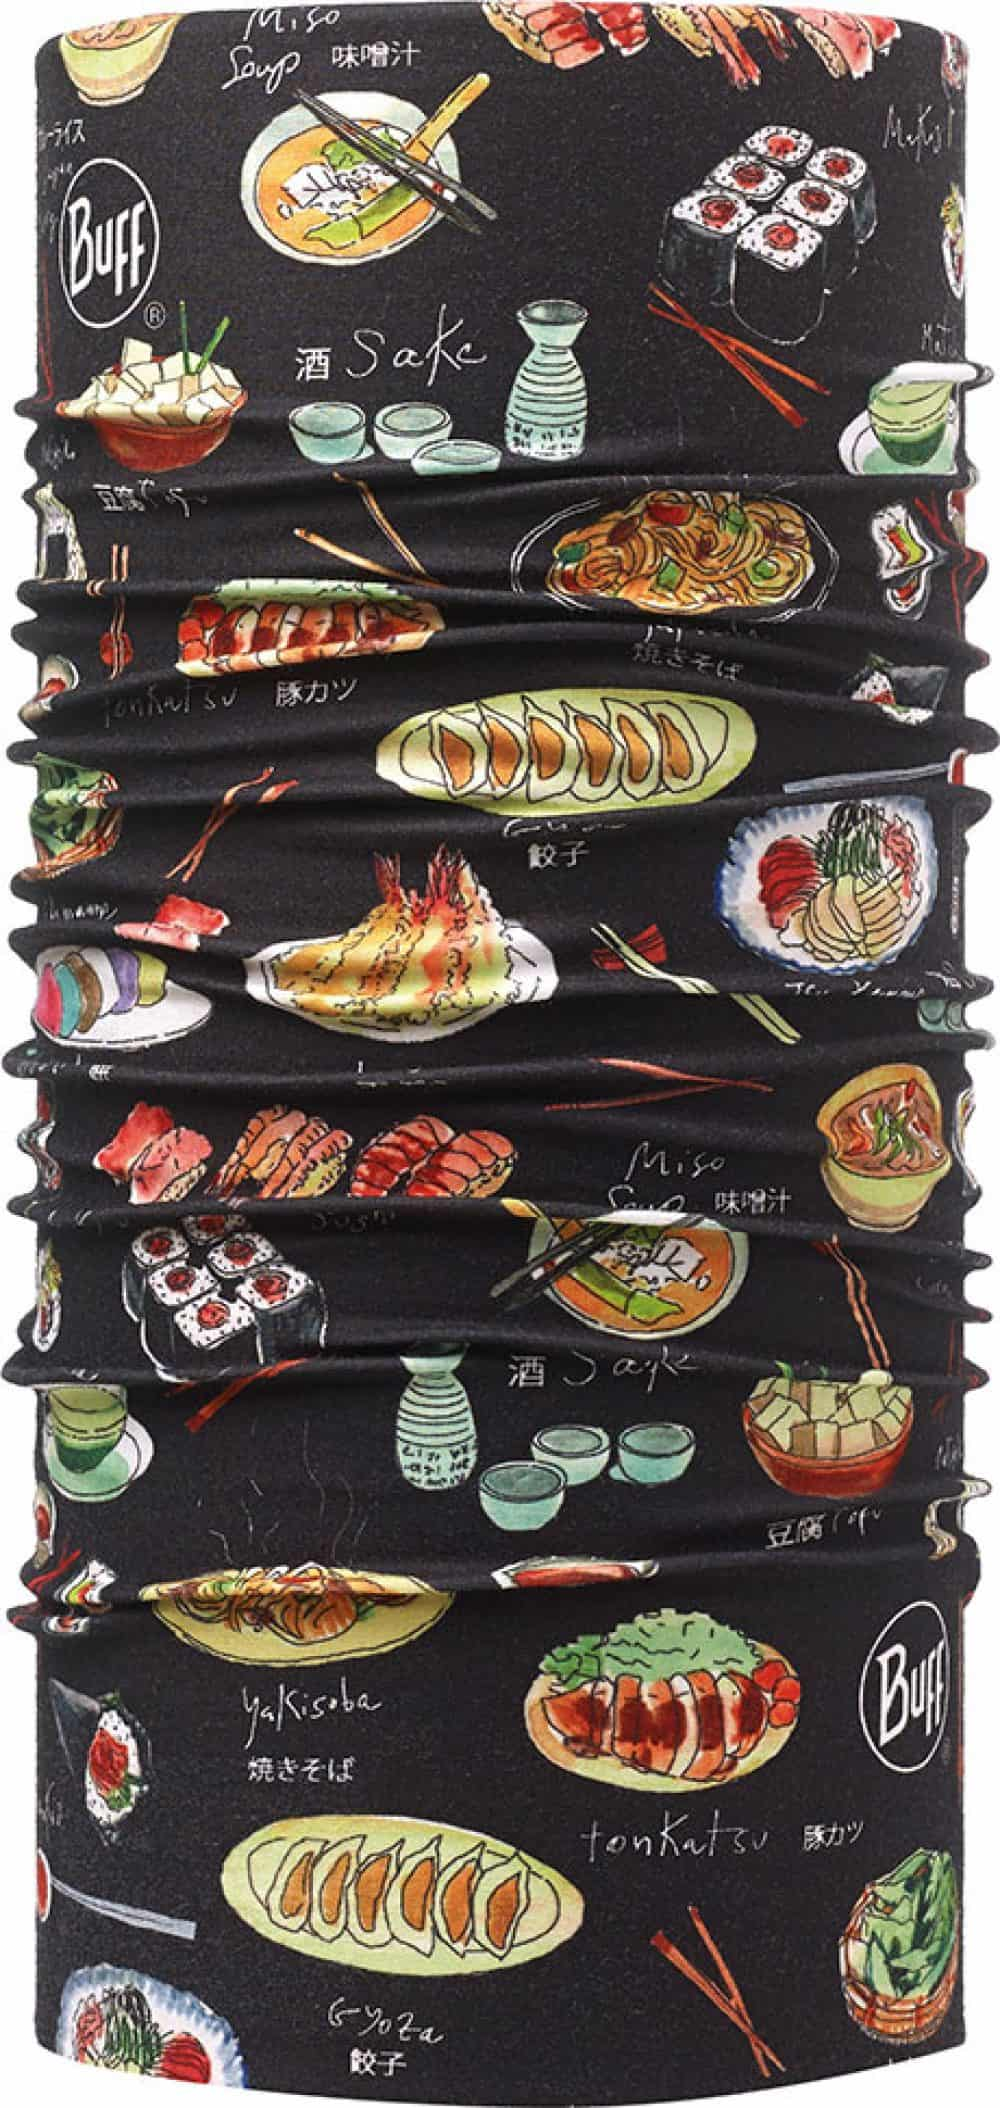 "Studio photo of the Professional range Dry Cool Buff® Chefs Collection design ""Japonice Black"". Source: buff.eu"